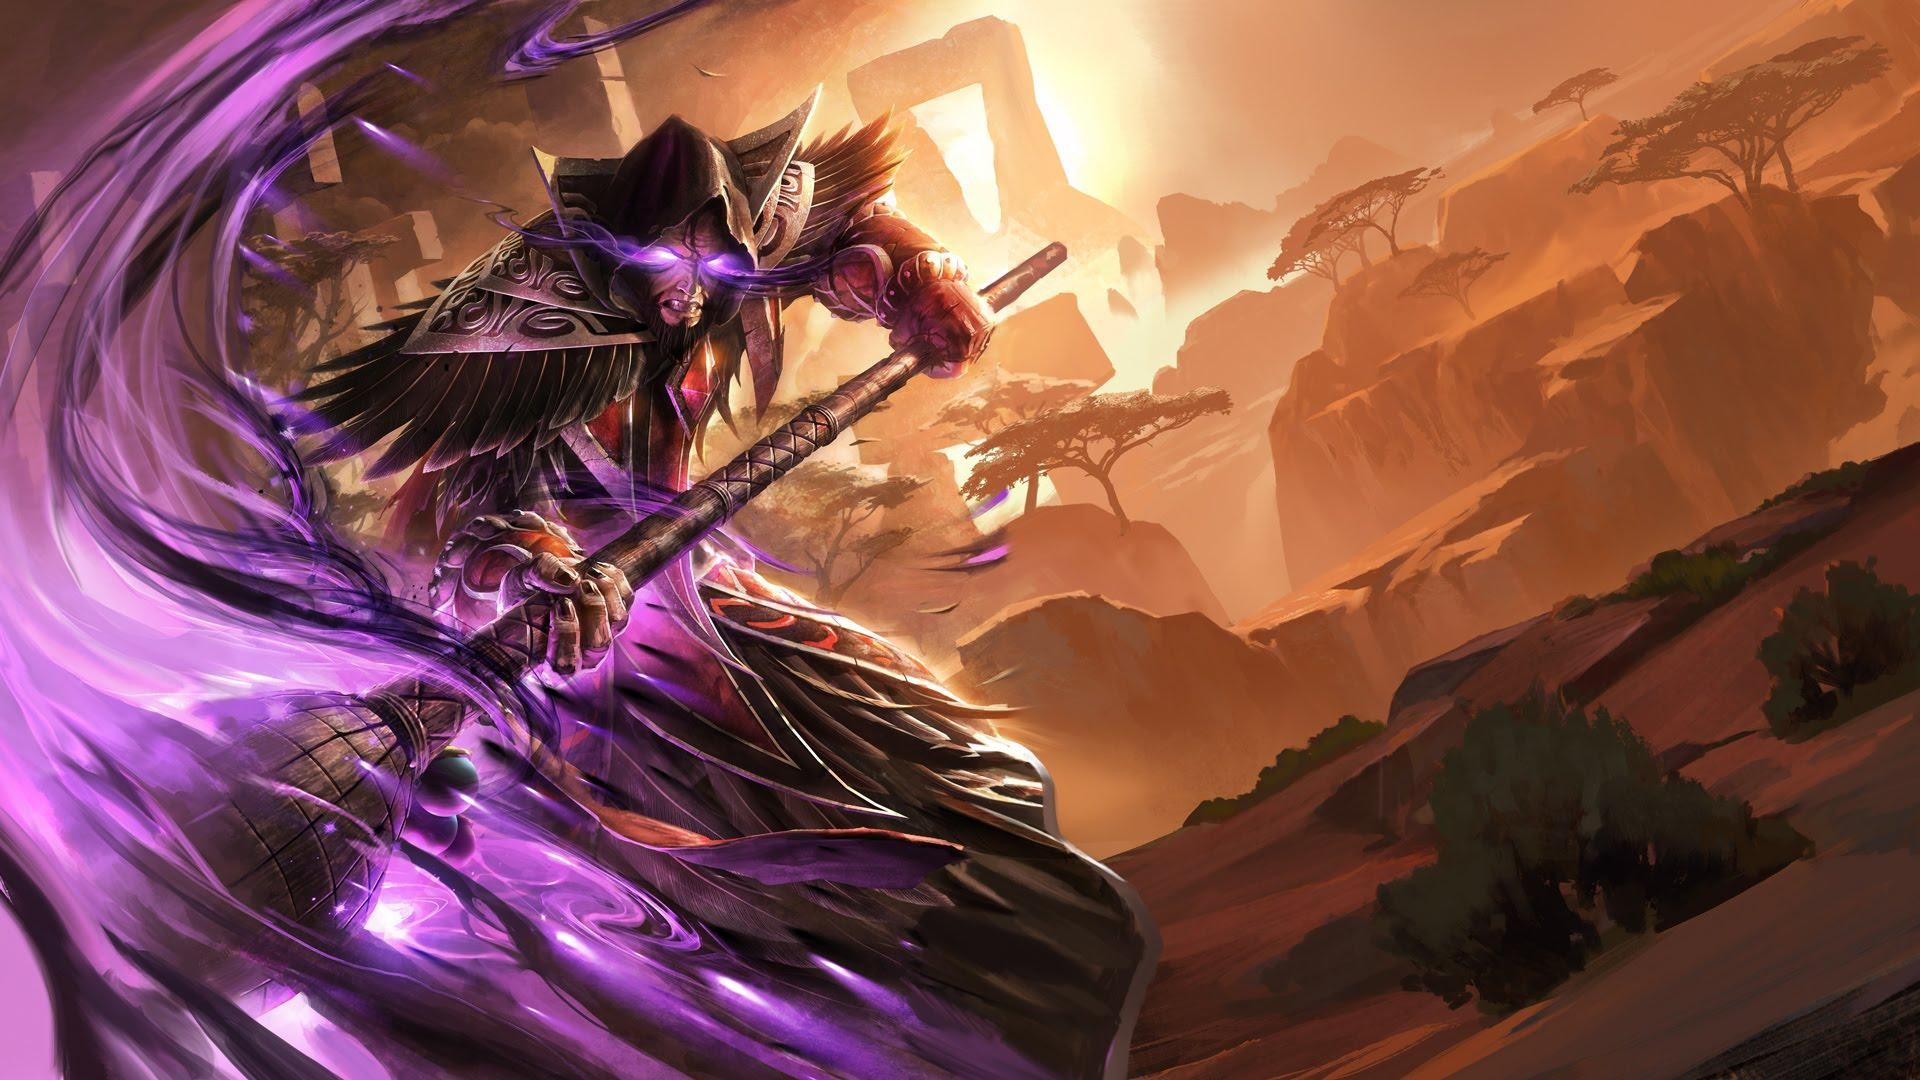 General 1920x1080 Hearthstone: Heroes of Warcraft video games fantasy art Medivh